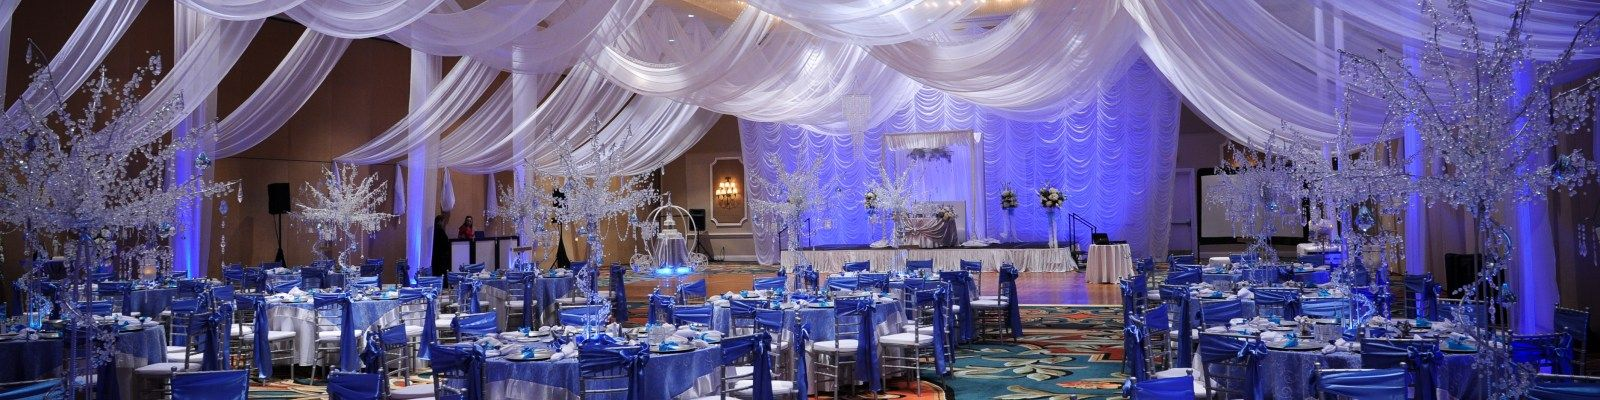 Party rentals in Atlanta Party Rentals in